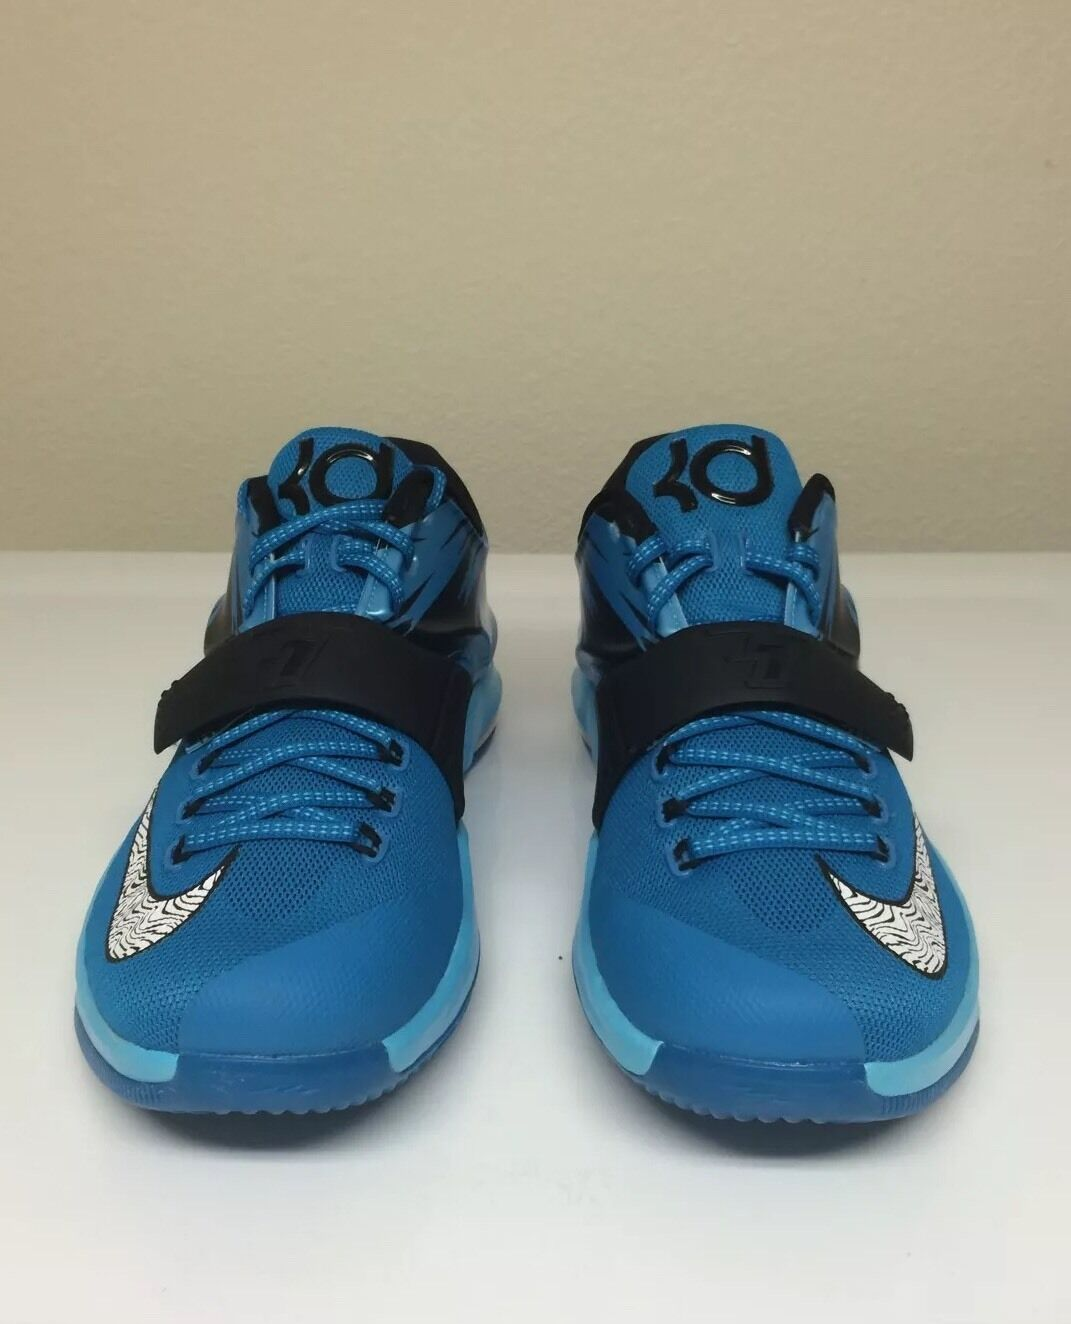 Nike KD 7 Men's Size 10 Light Blue Lacquer Clearwater Total Orange